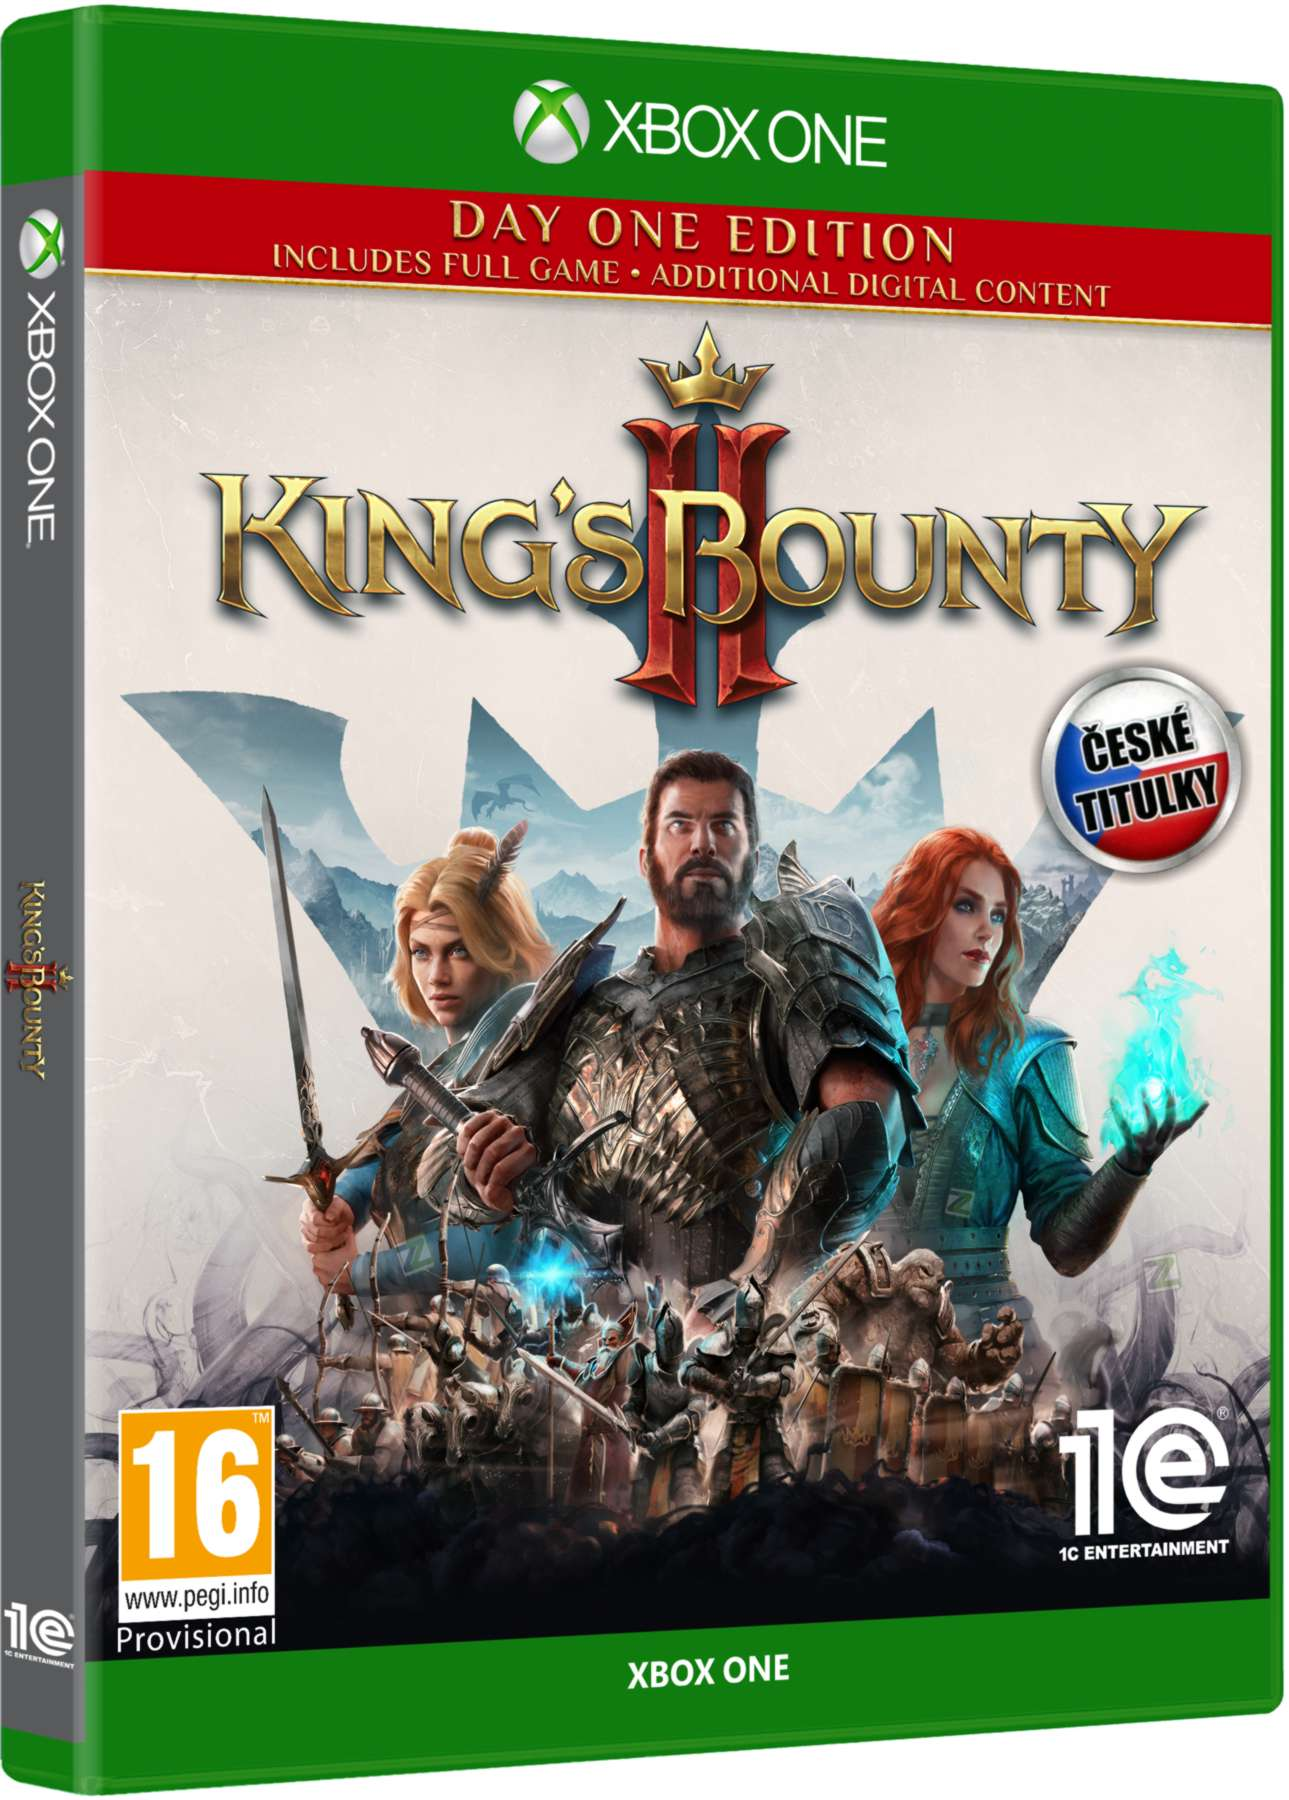 King's Bounty 2 (Day One Edition) - Xbox One